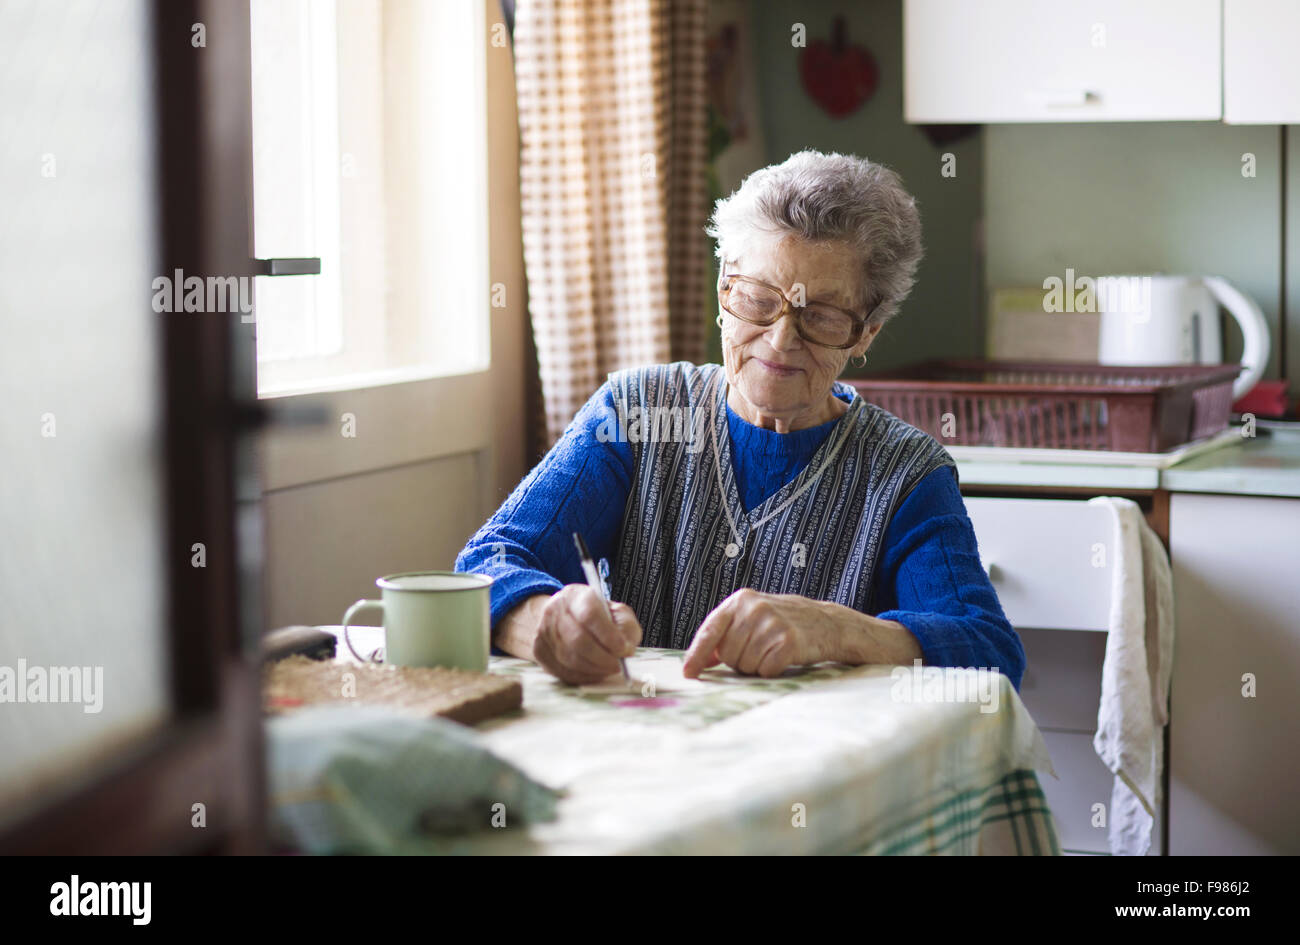 Old woman is sitting in her country style kitchen - Stock Image